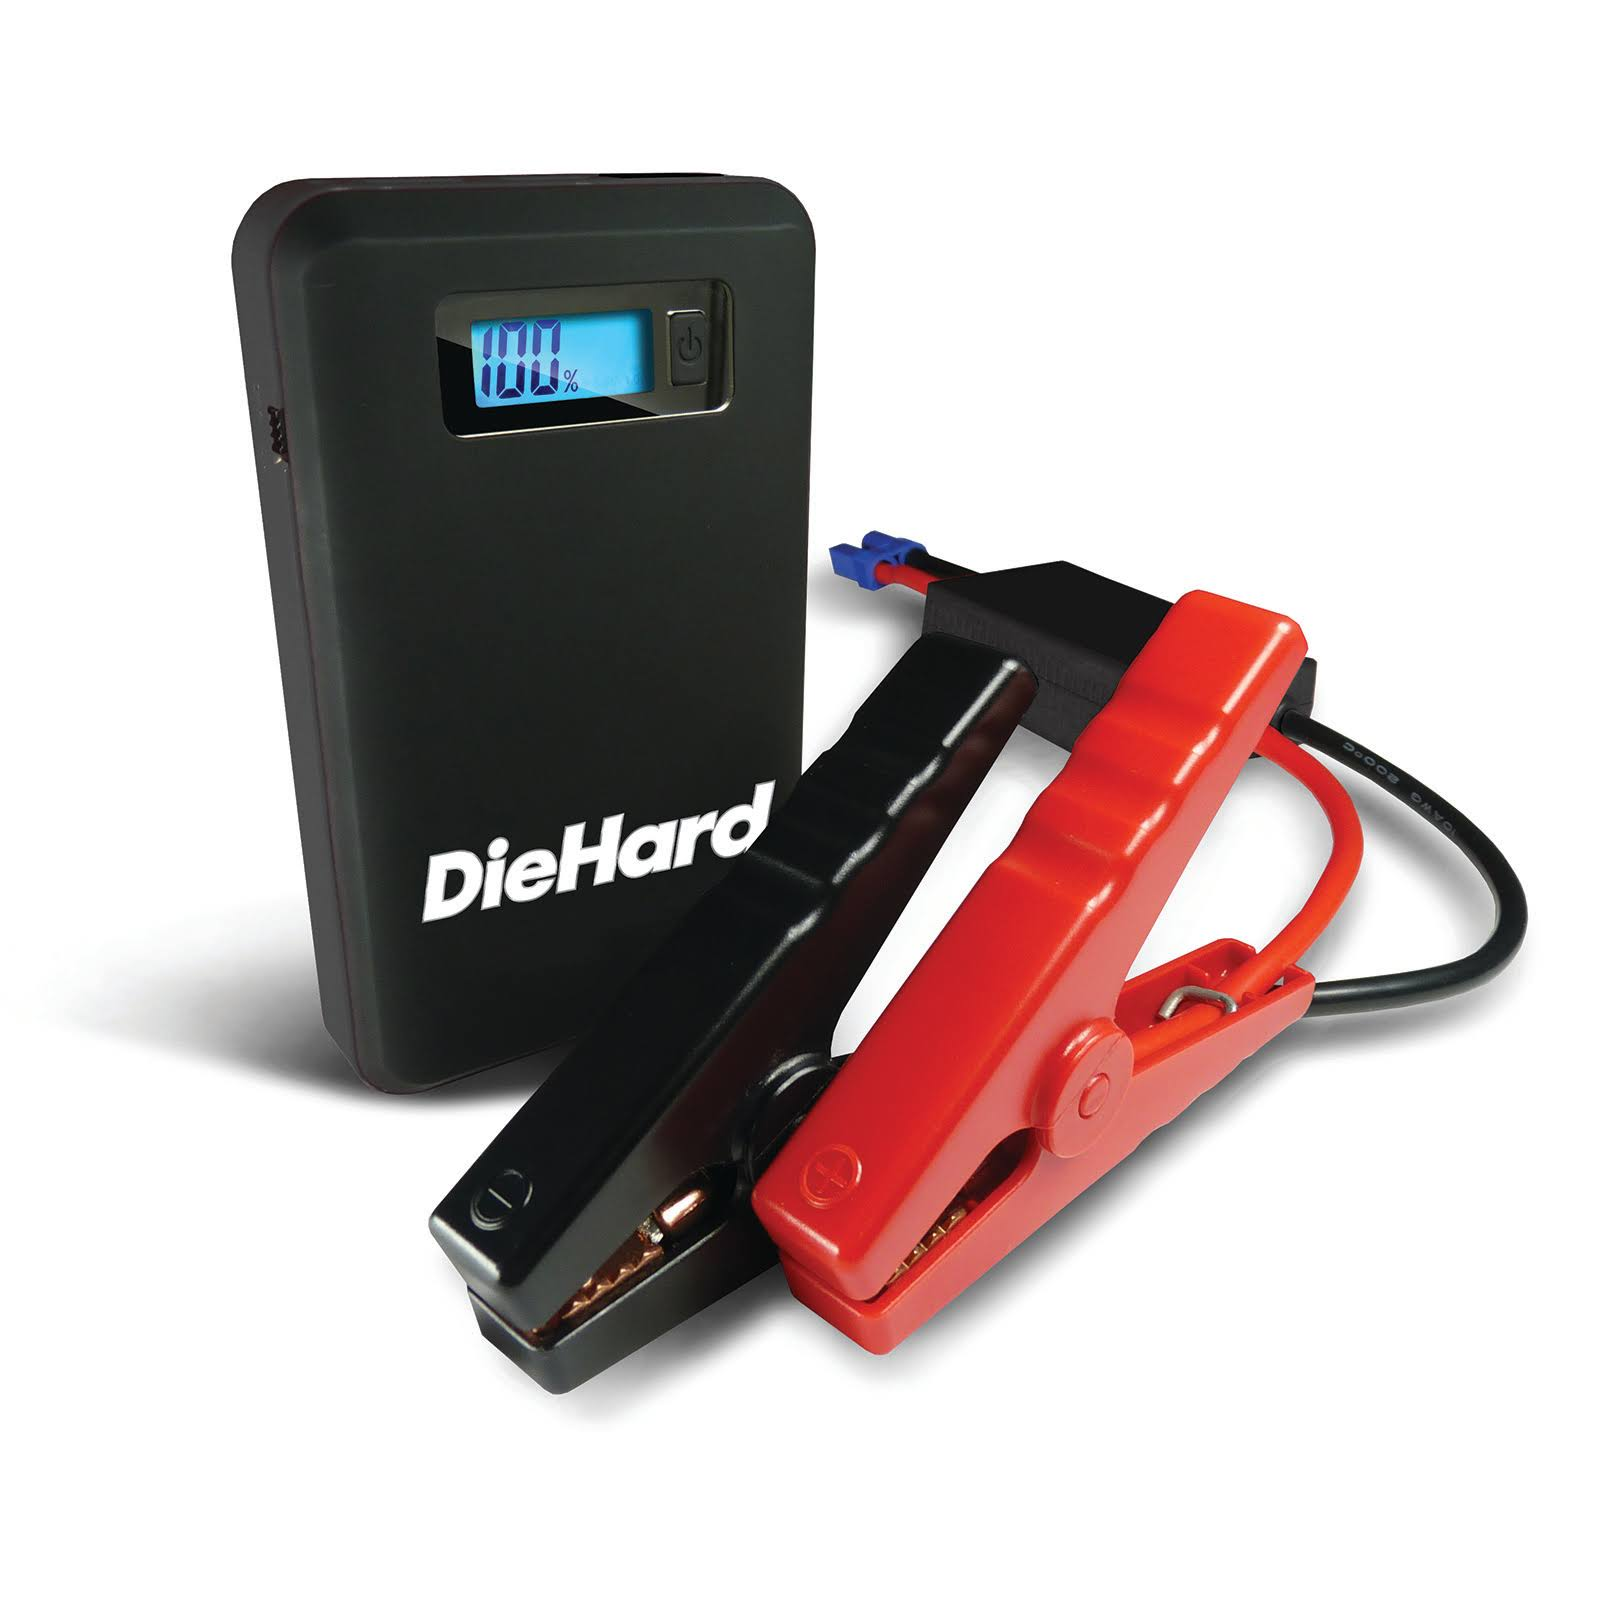 DieHard Portable Lithium Jump Starter - 12V, Car Battery, USB Charger Amp Power